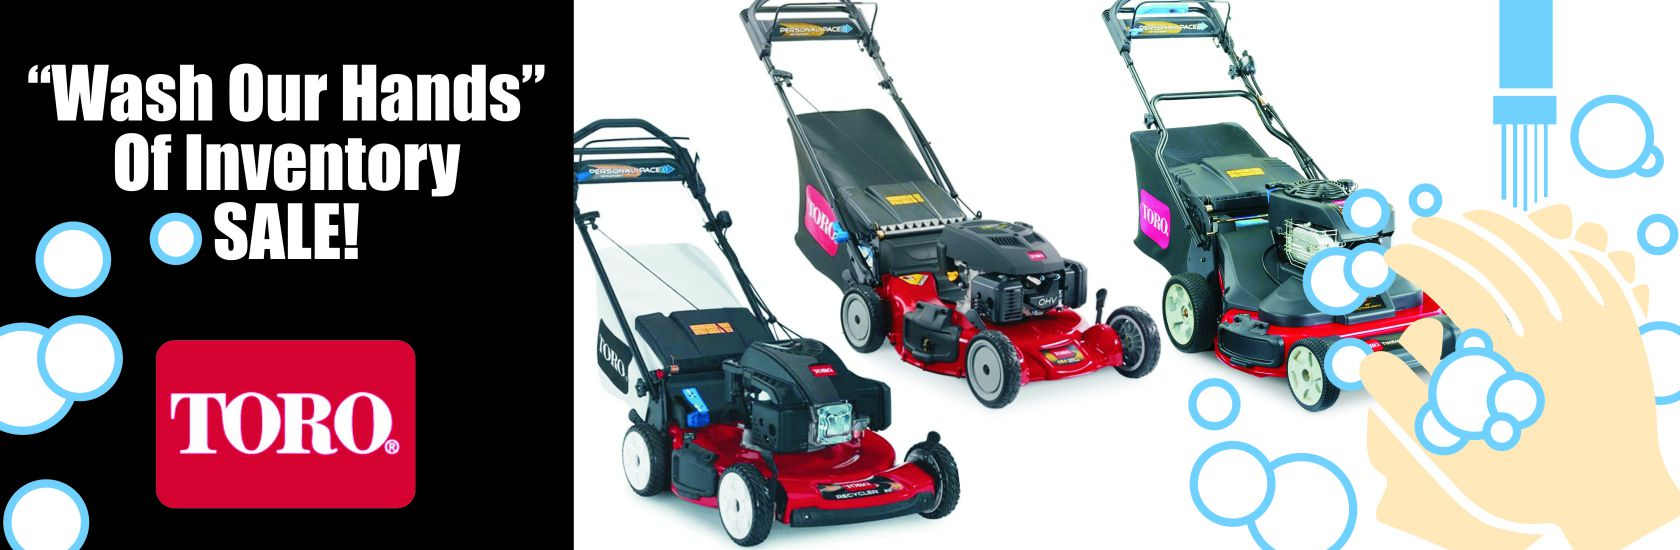 """WASH OUR HANDS"" OF INVENTORY SALE!